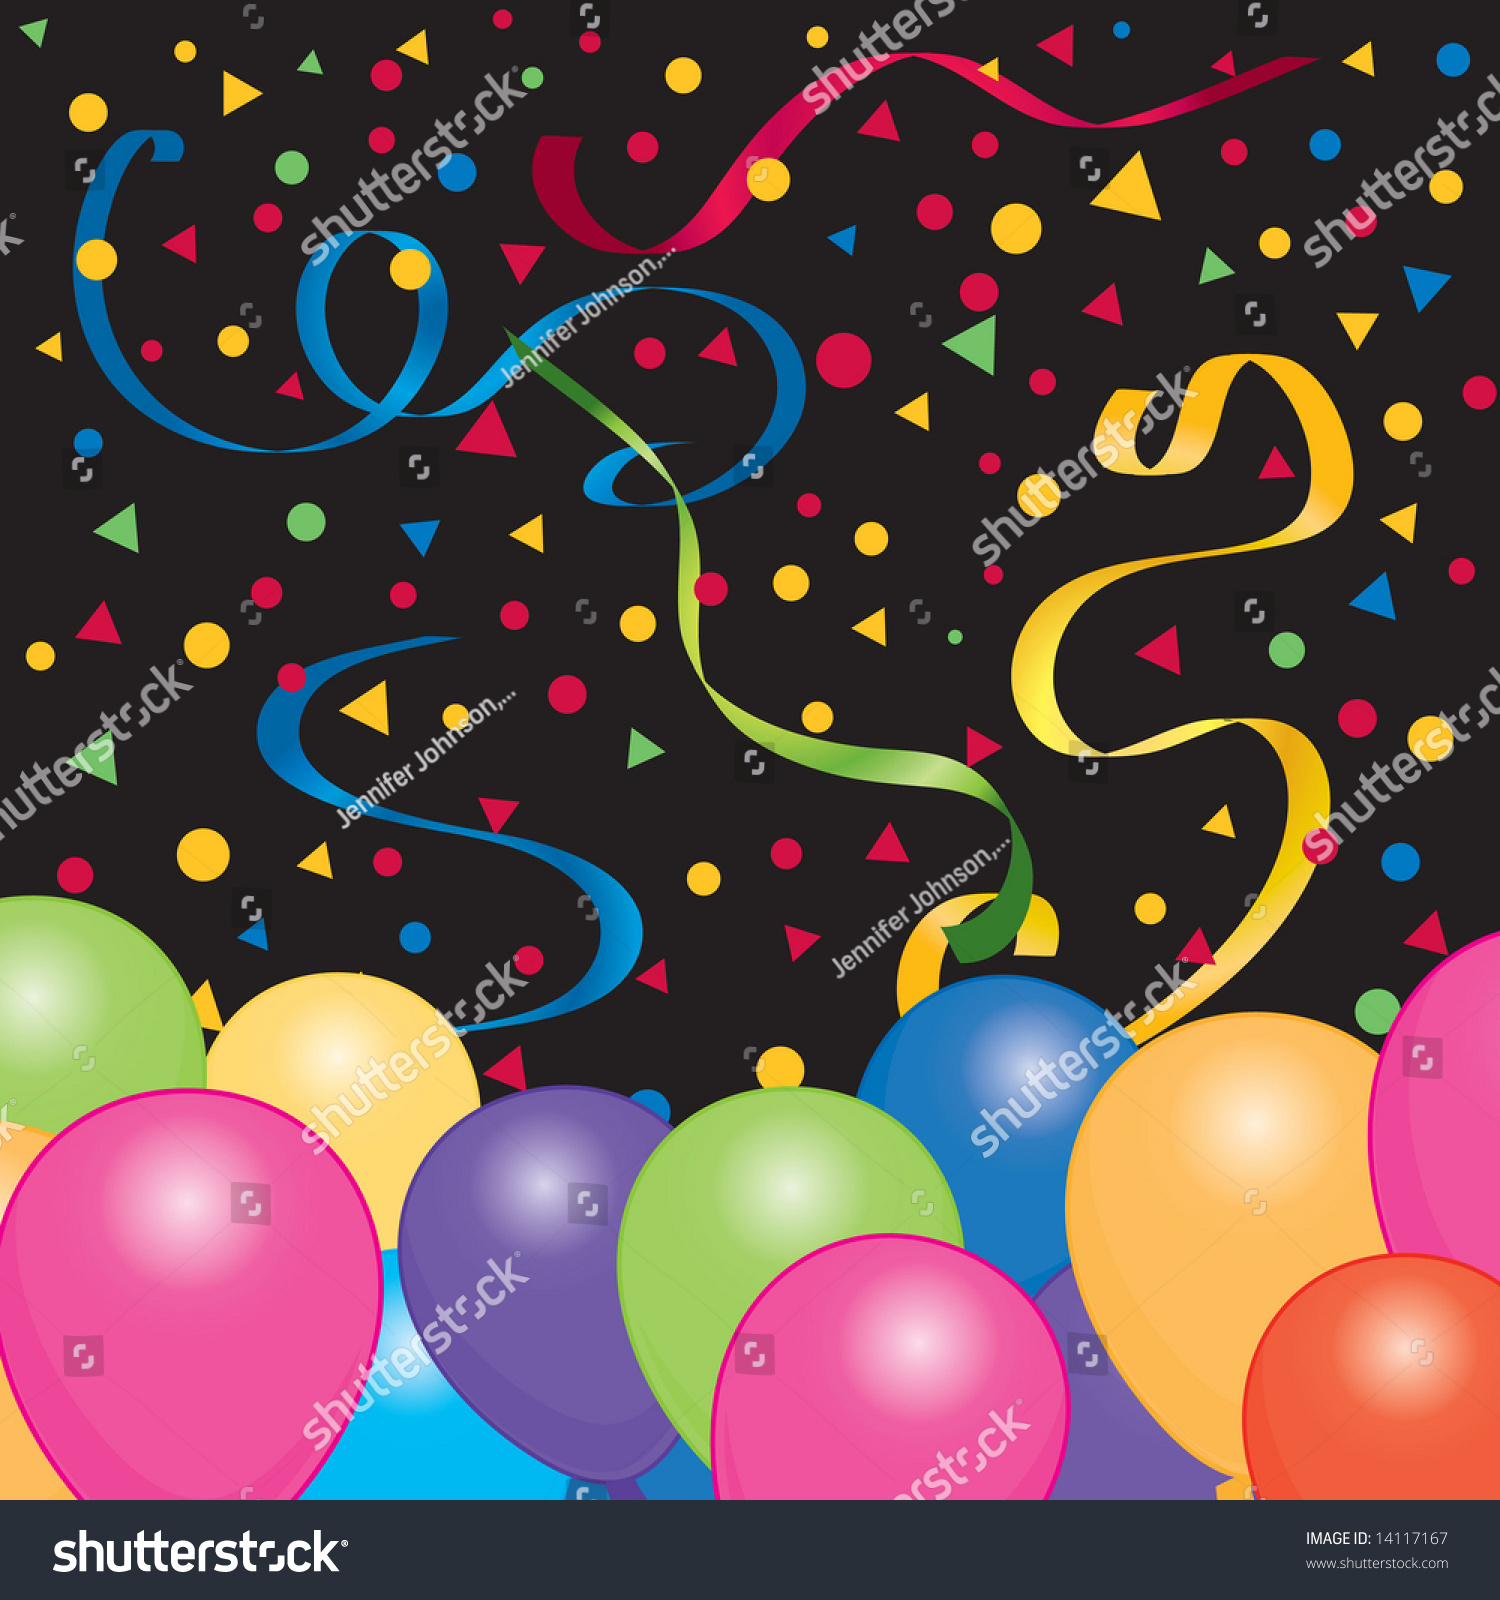 birthday background wallpaper ; stock-photo-happy-birthday-background-wallpaper-with-bright-color-balloons-confetti-and-streamers-on-a-14117167